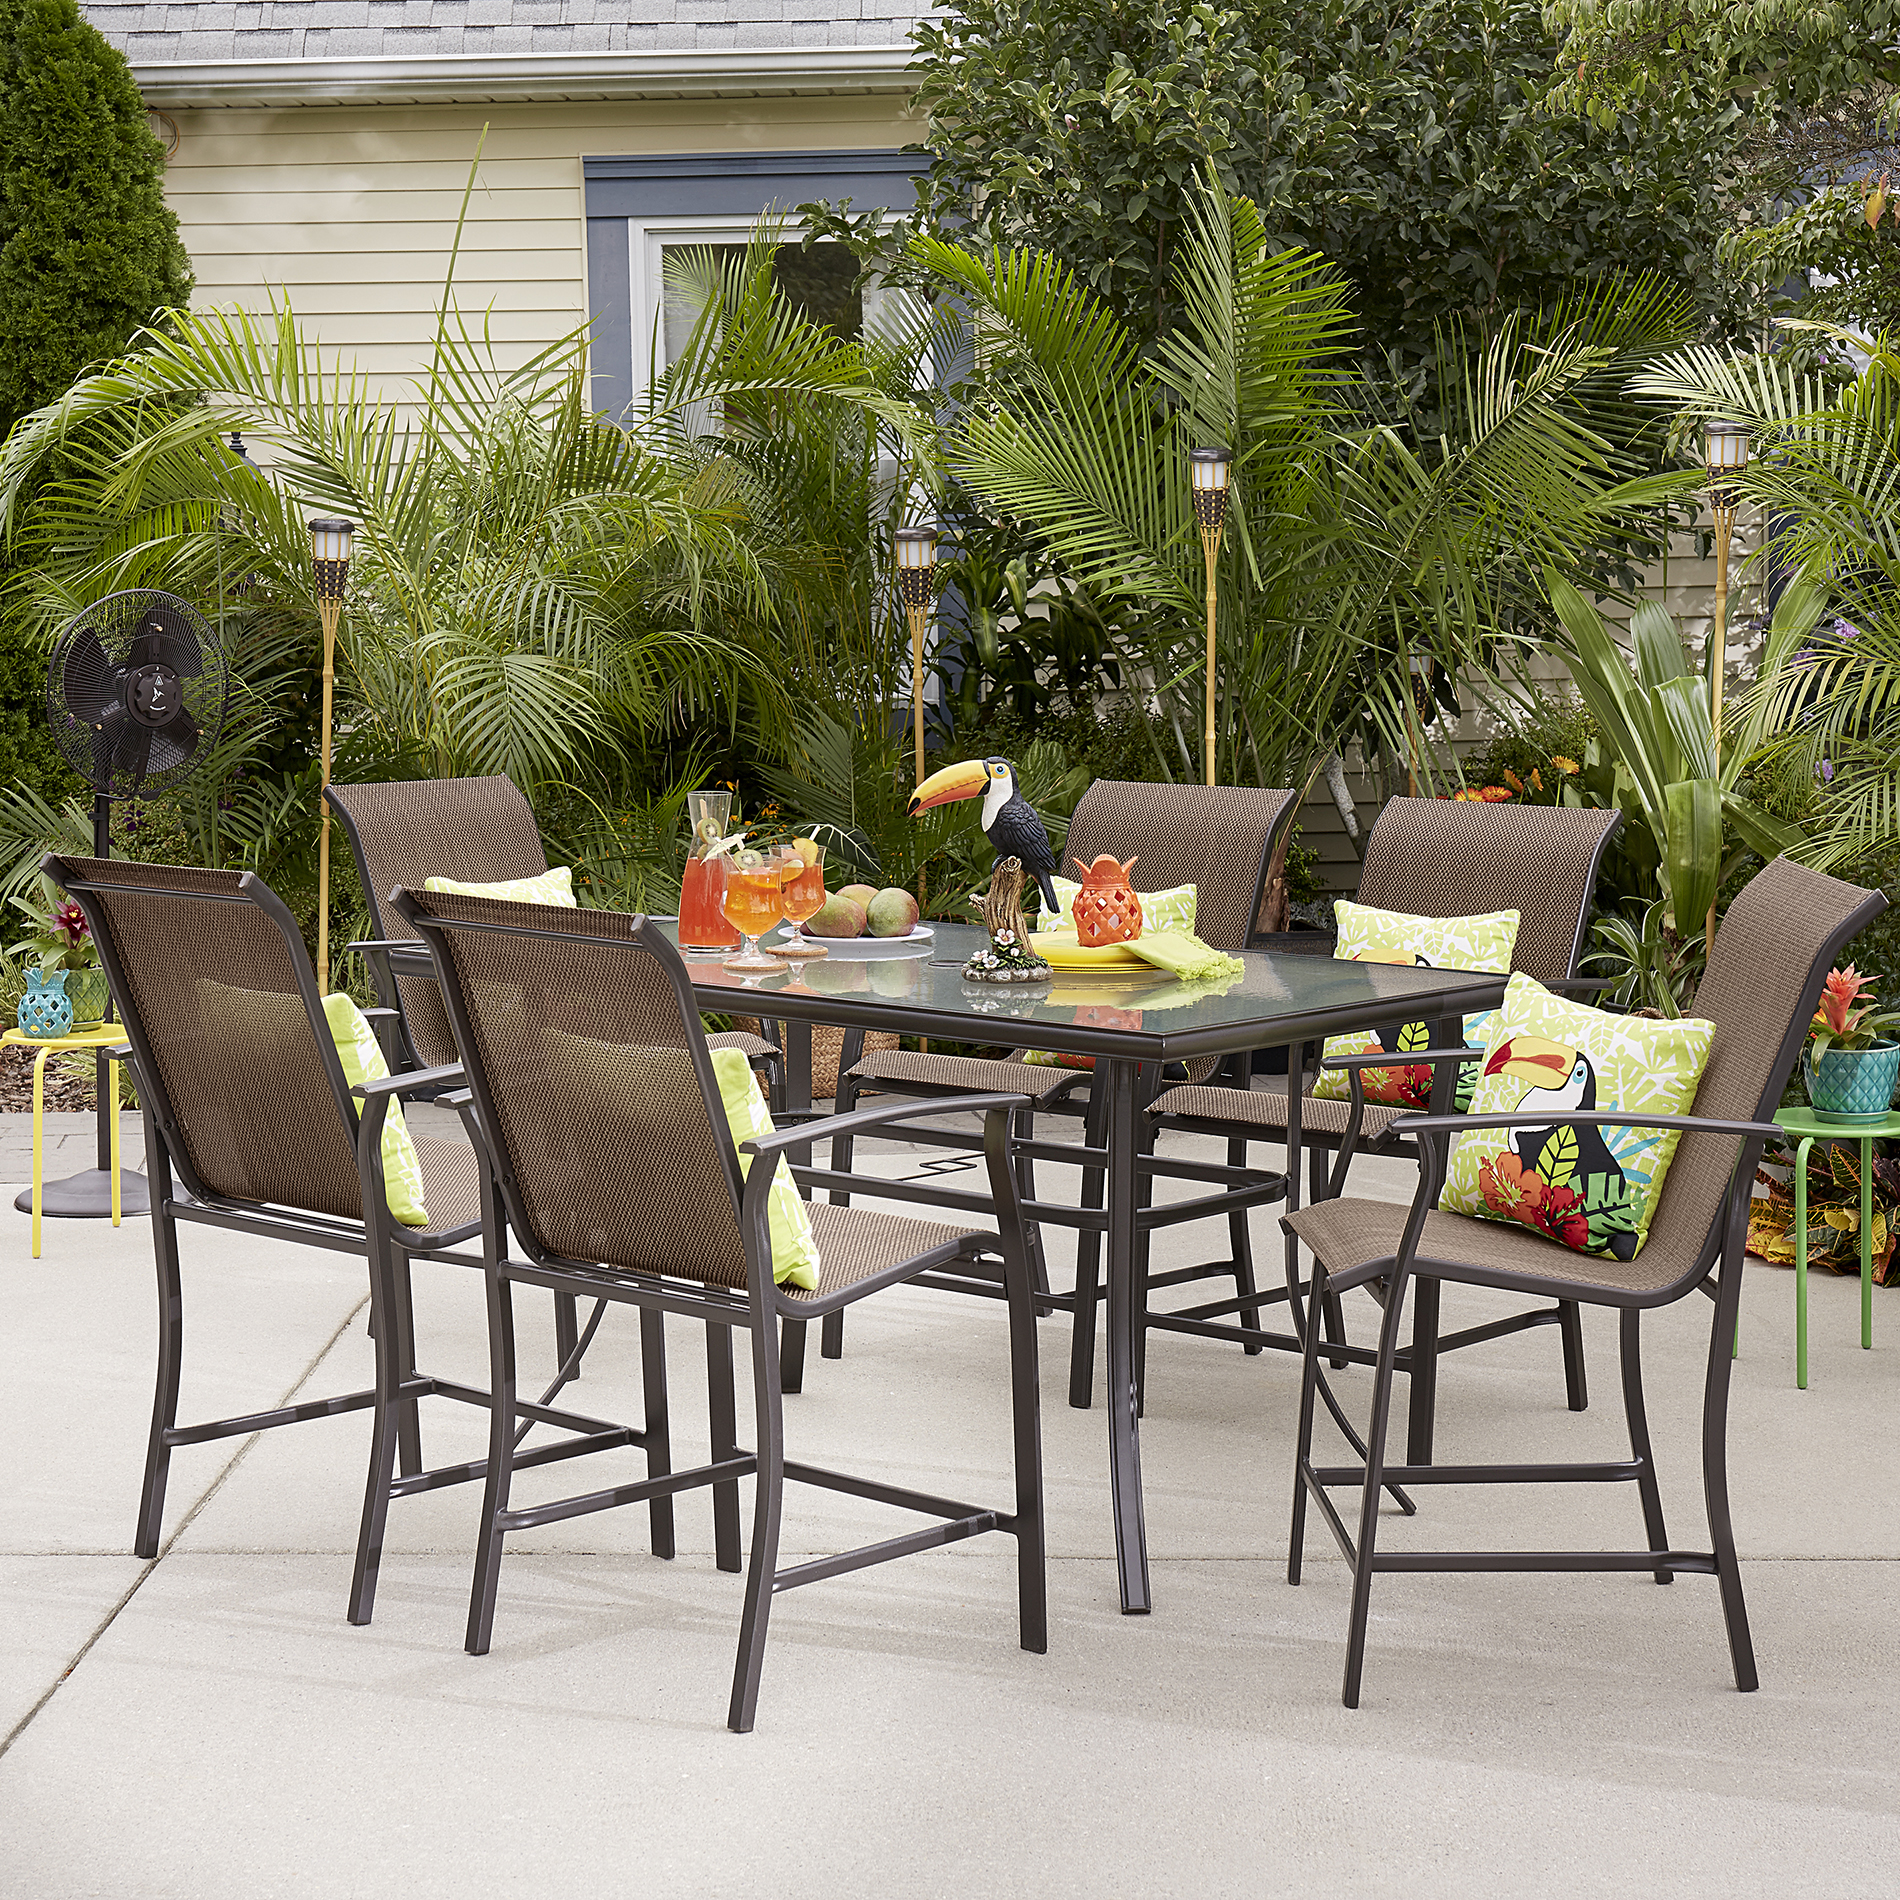 Essential Garden Fulton 7 Piece High Dining Patio Set